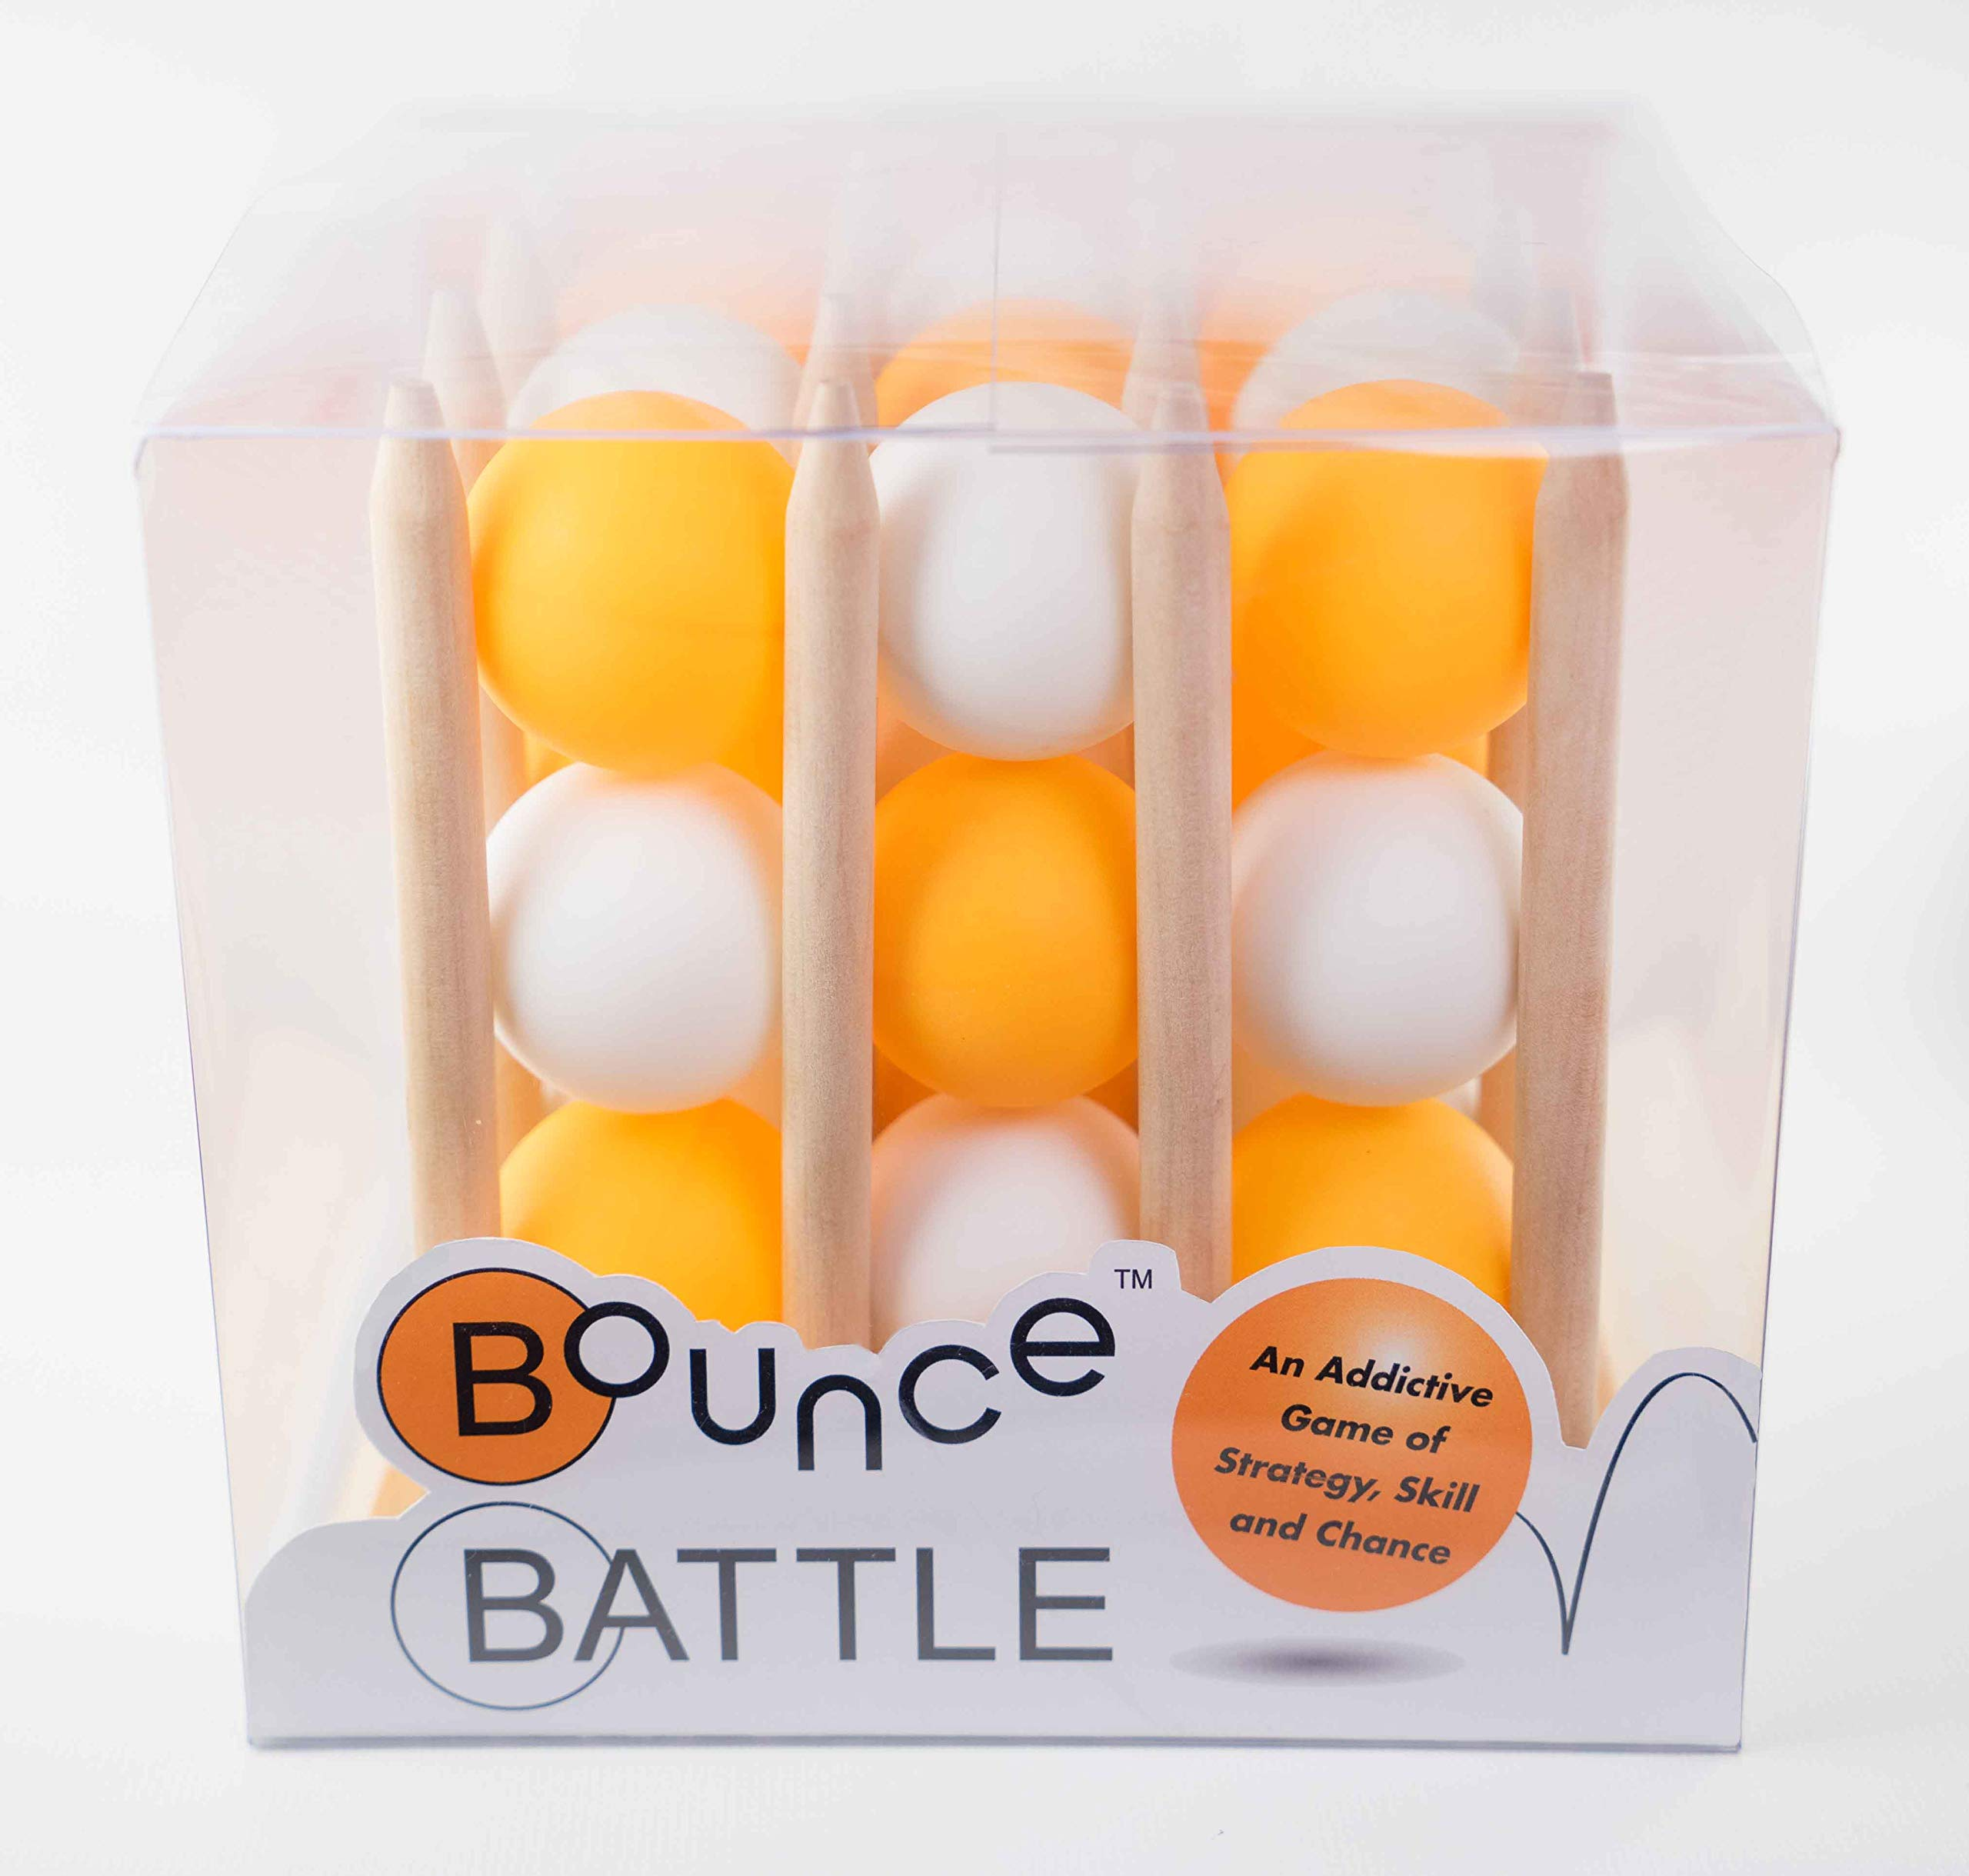 Bounce Battle Premium Wood Edition Game Set: An Addictive Game of Strategy, Skill & Chance